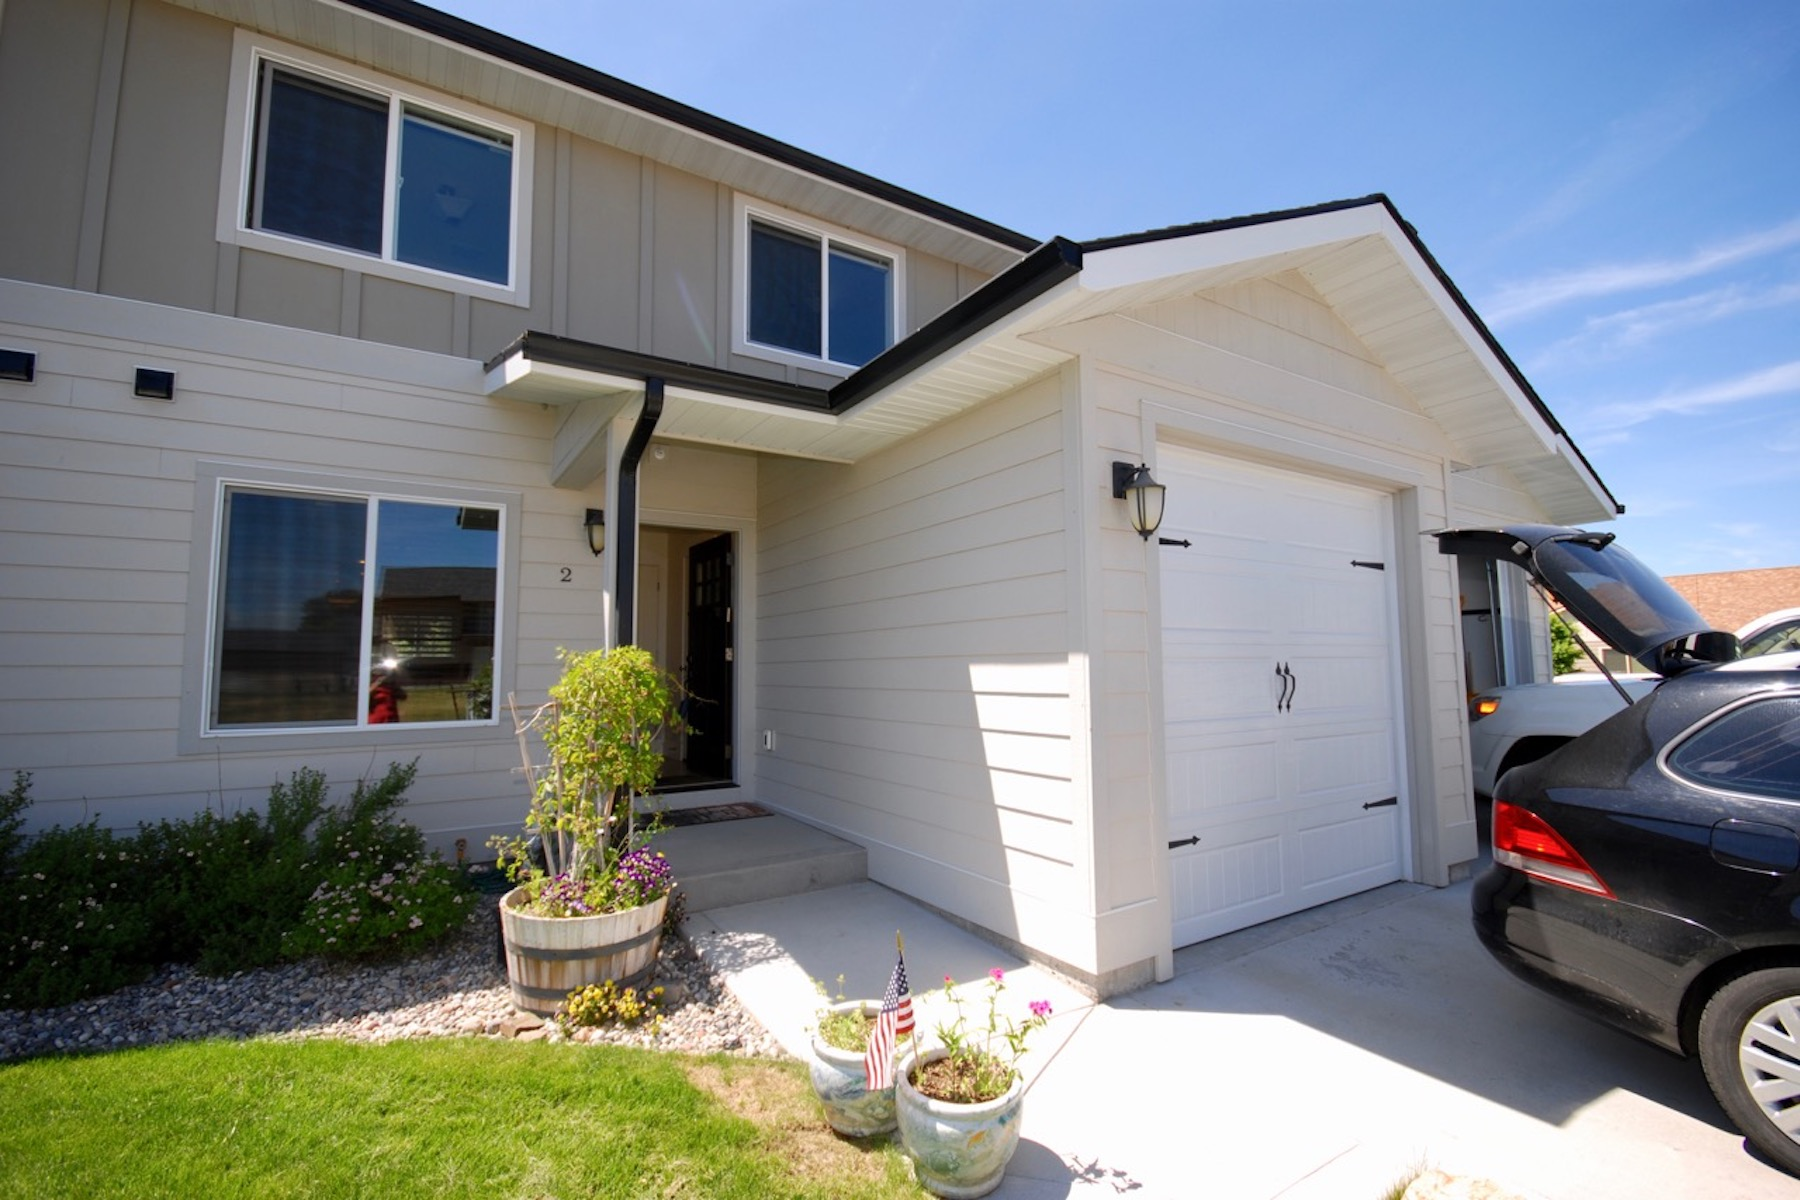 Townhouse for Sale at 116 Bow Perch, Unit 2 116 Bow Perch Unit 2 Bozeman, Montana 59718 United States